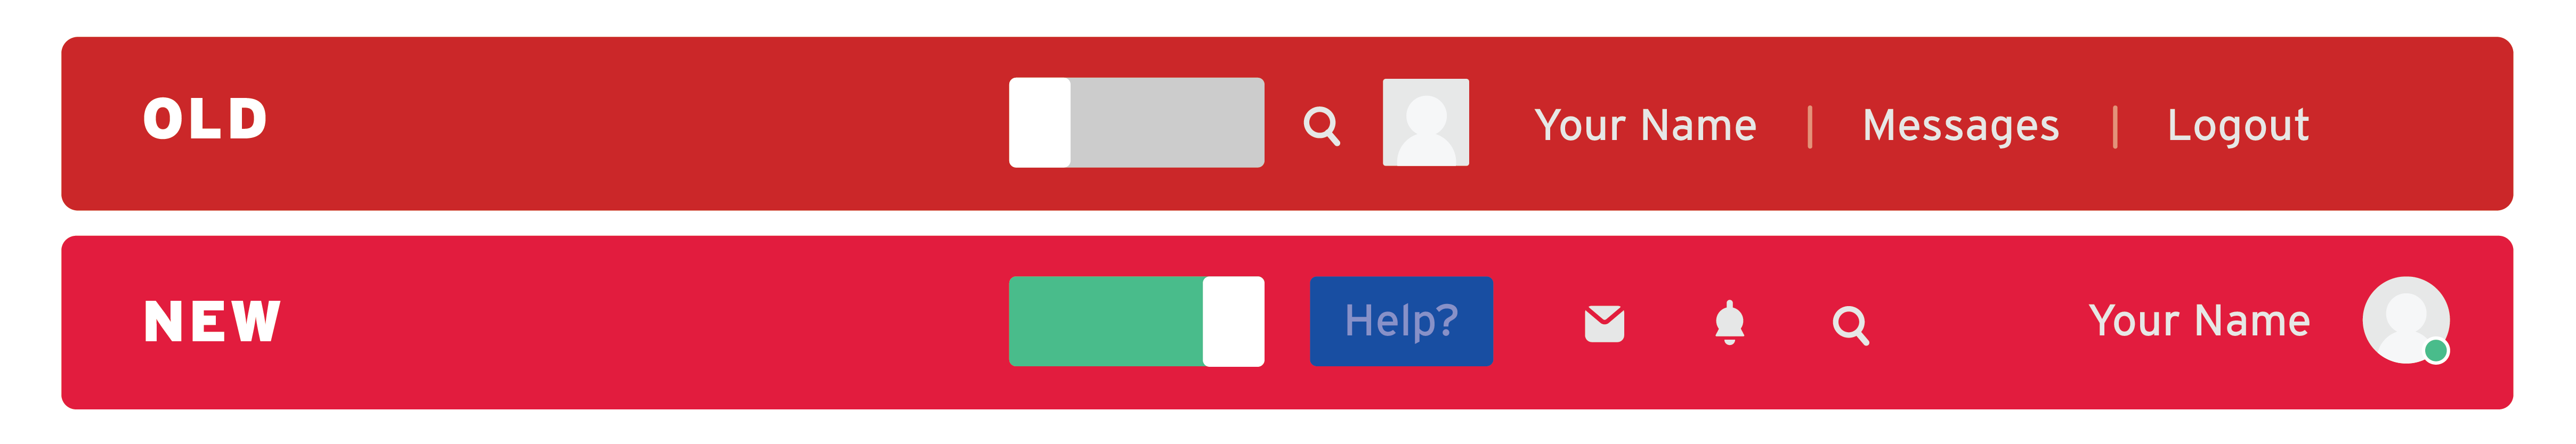 Two images showing a grey toogle for the old look and a green toggle for the new look